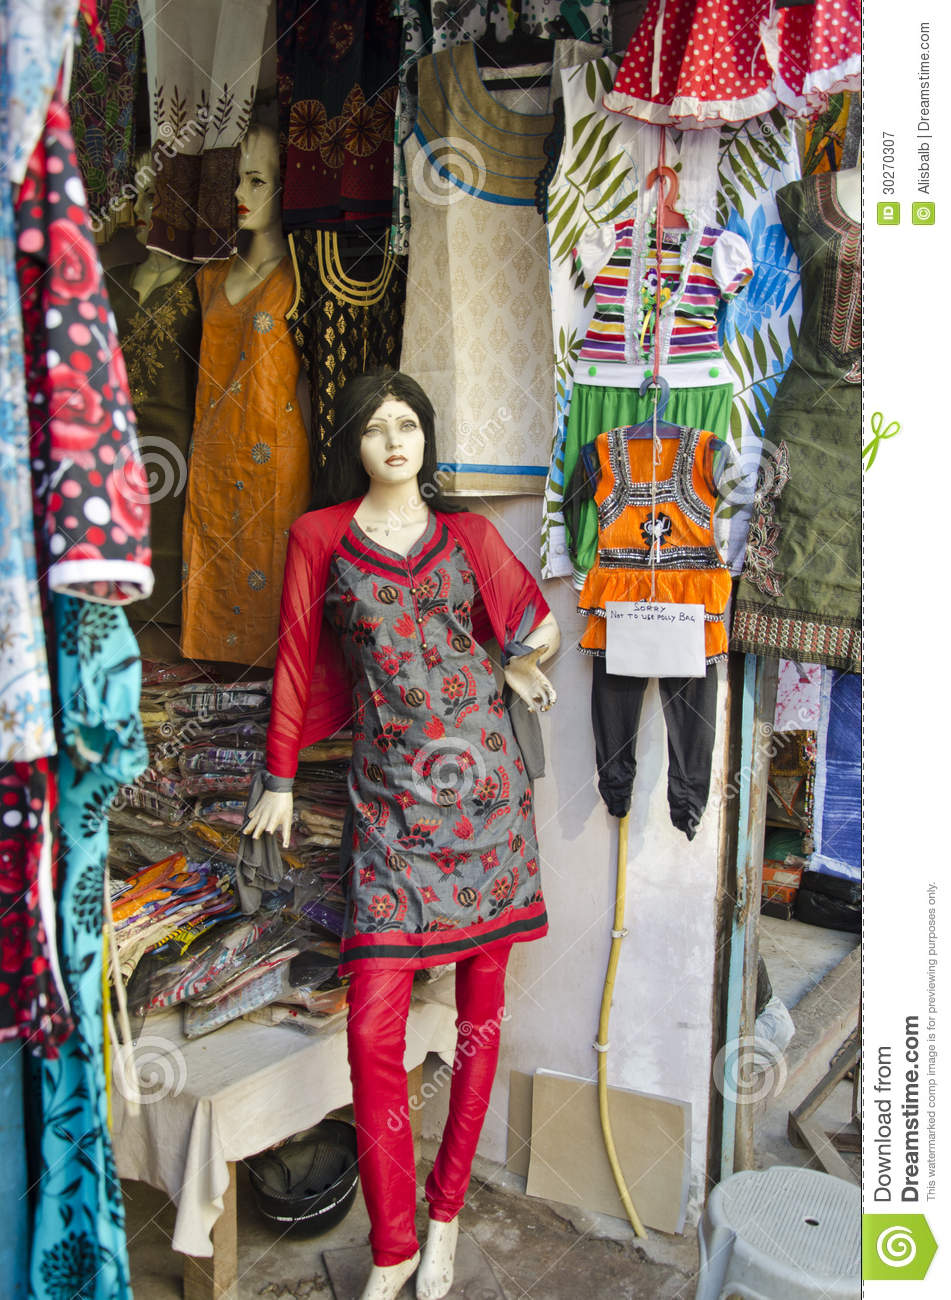 Indian clothing stores near me